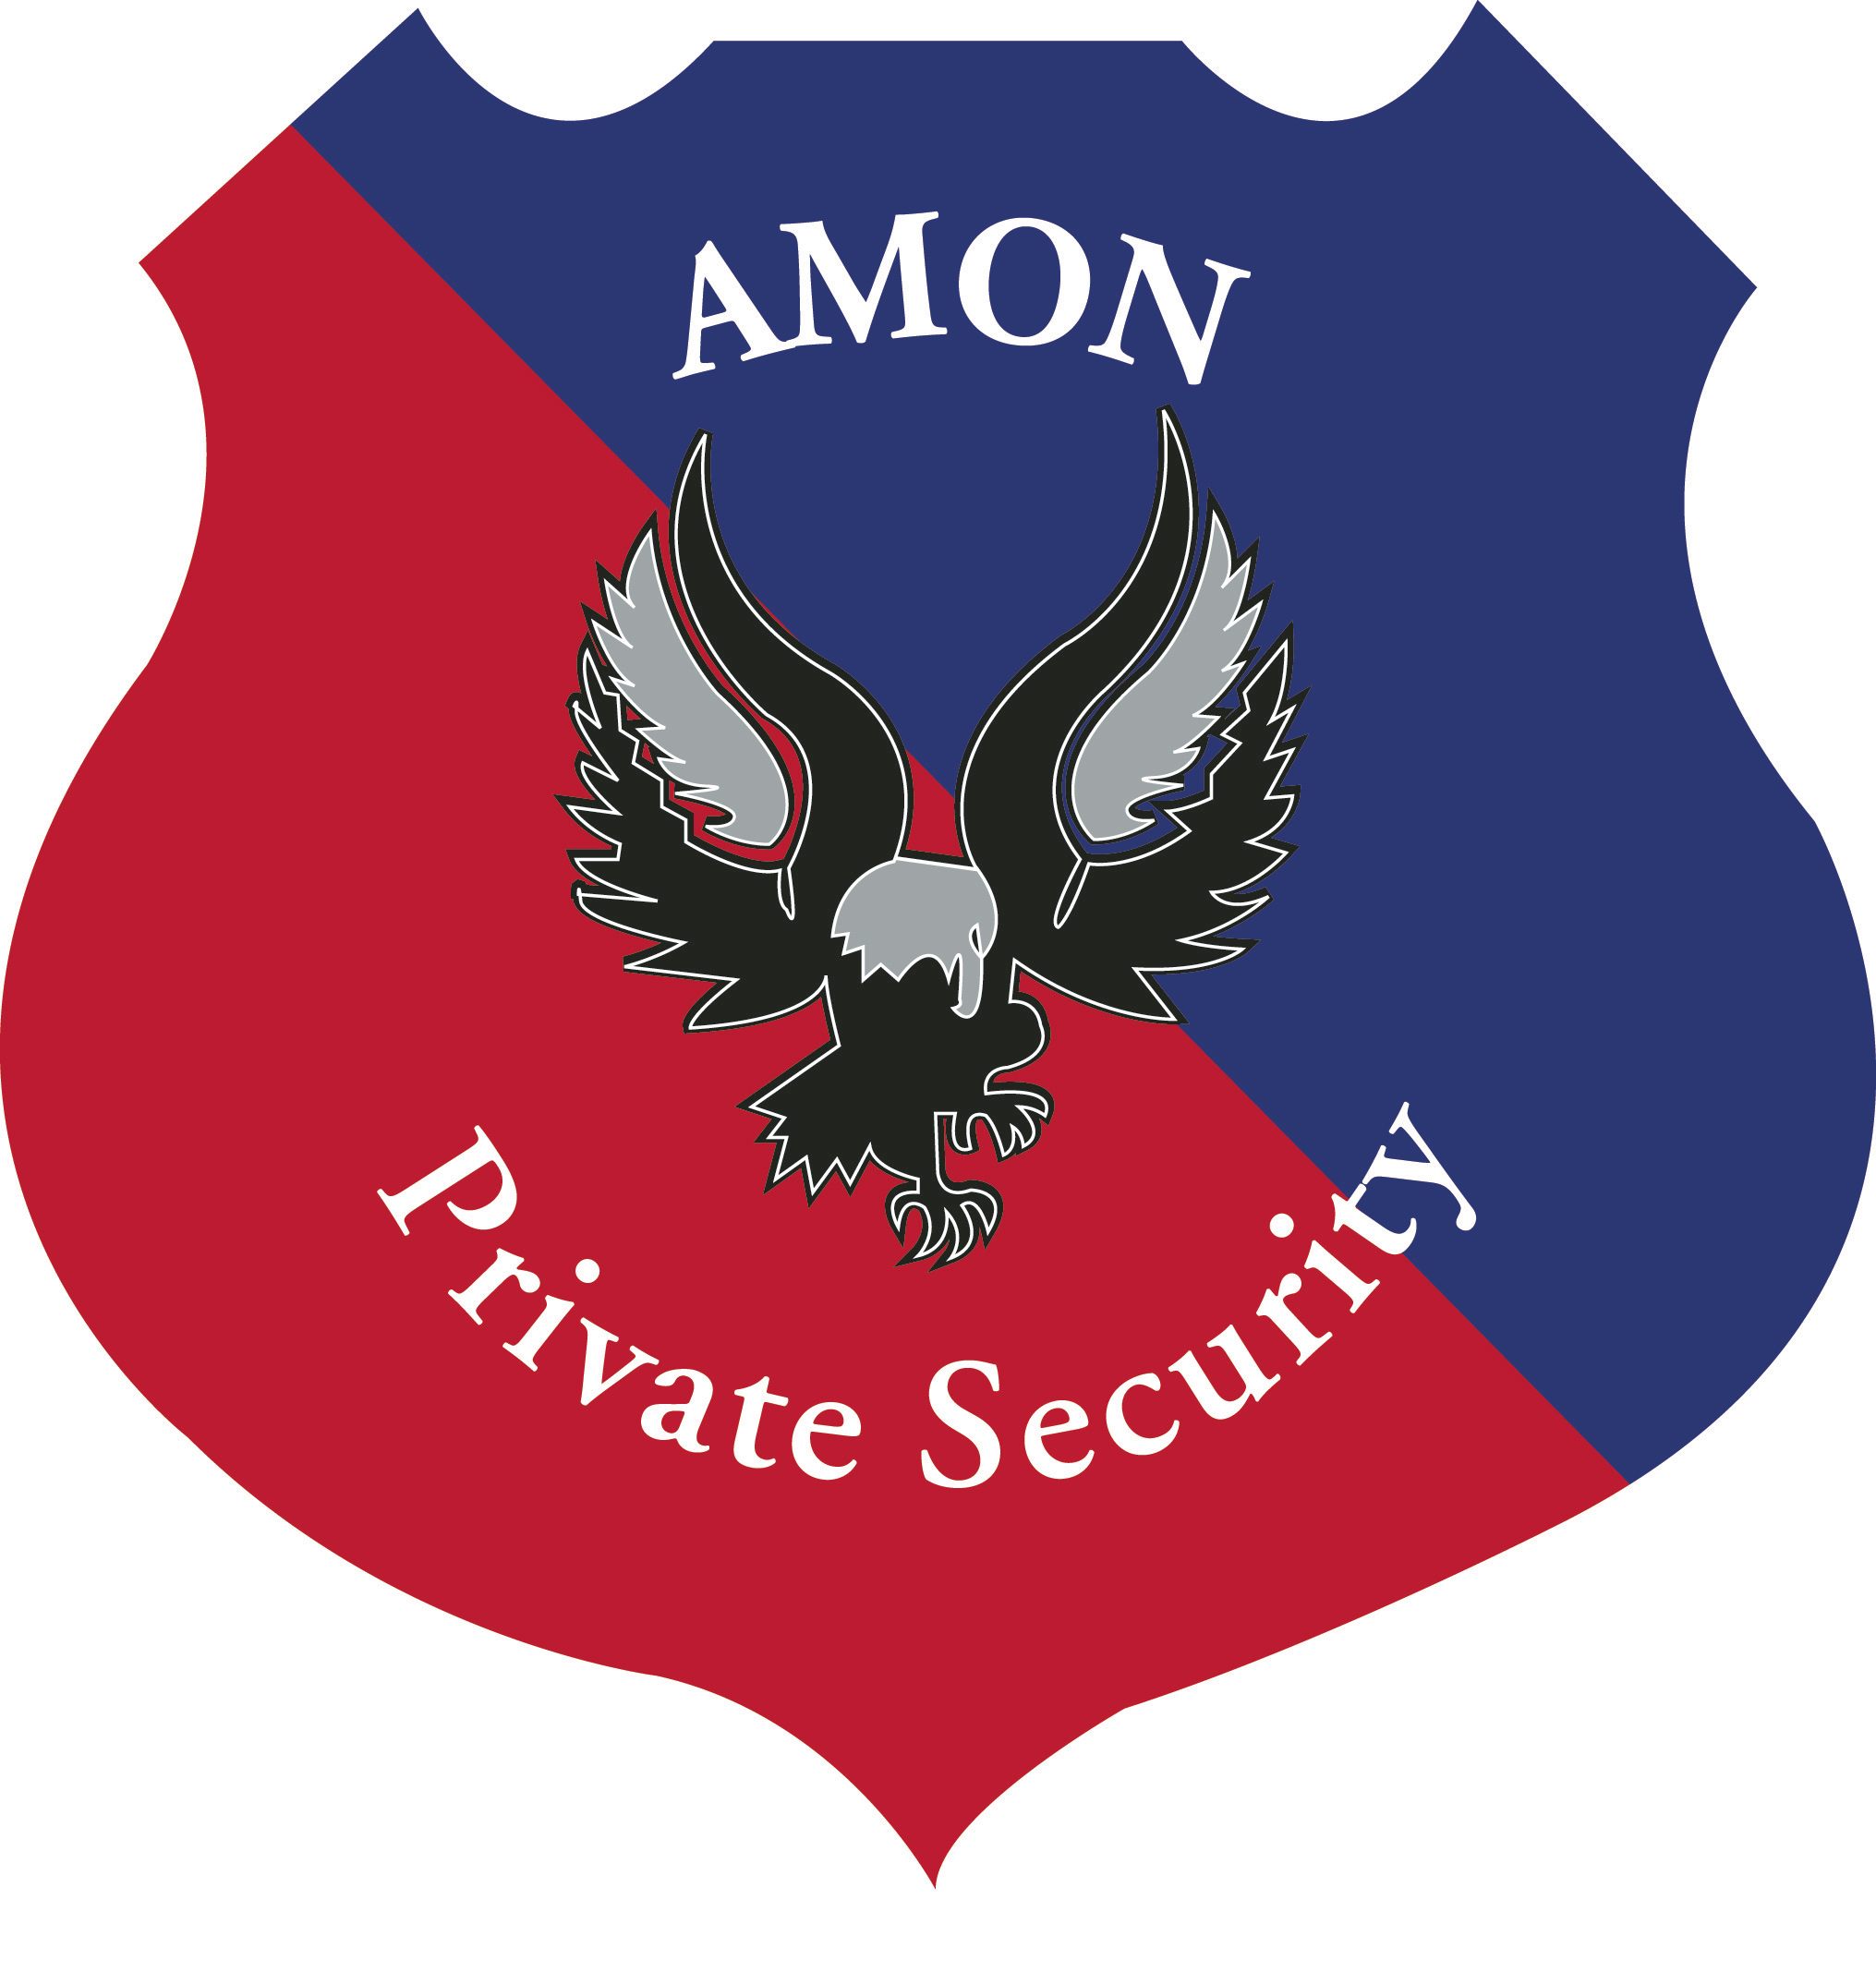 Amon Private Security Inc image 1